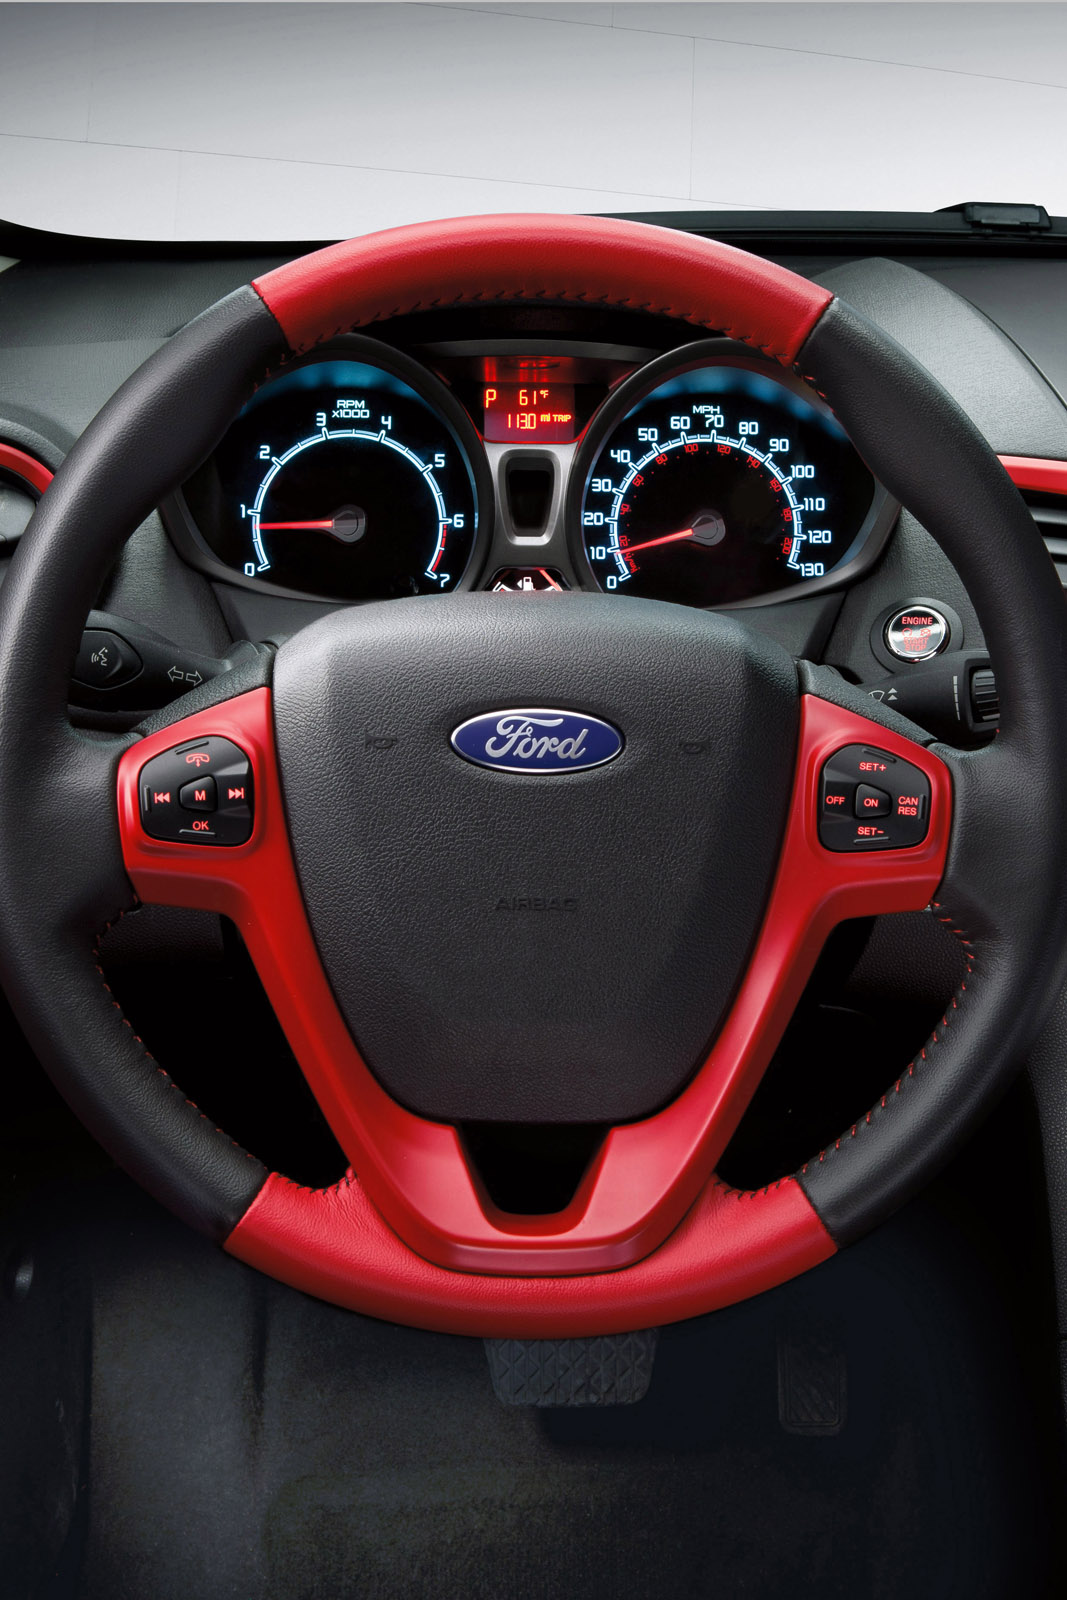 2012 Ford Fiesta With Interior And Exterior Car D 233 Cor